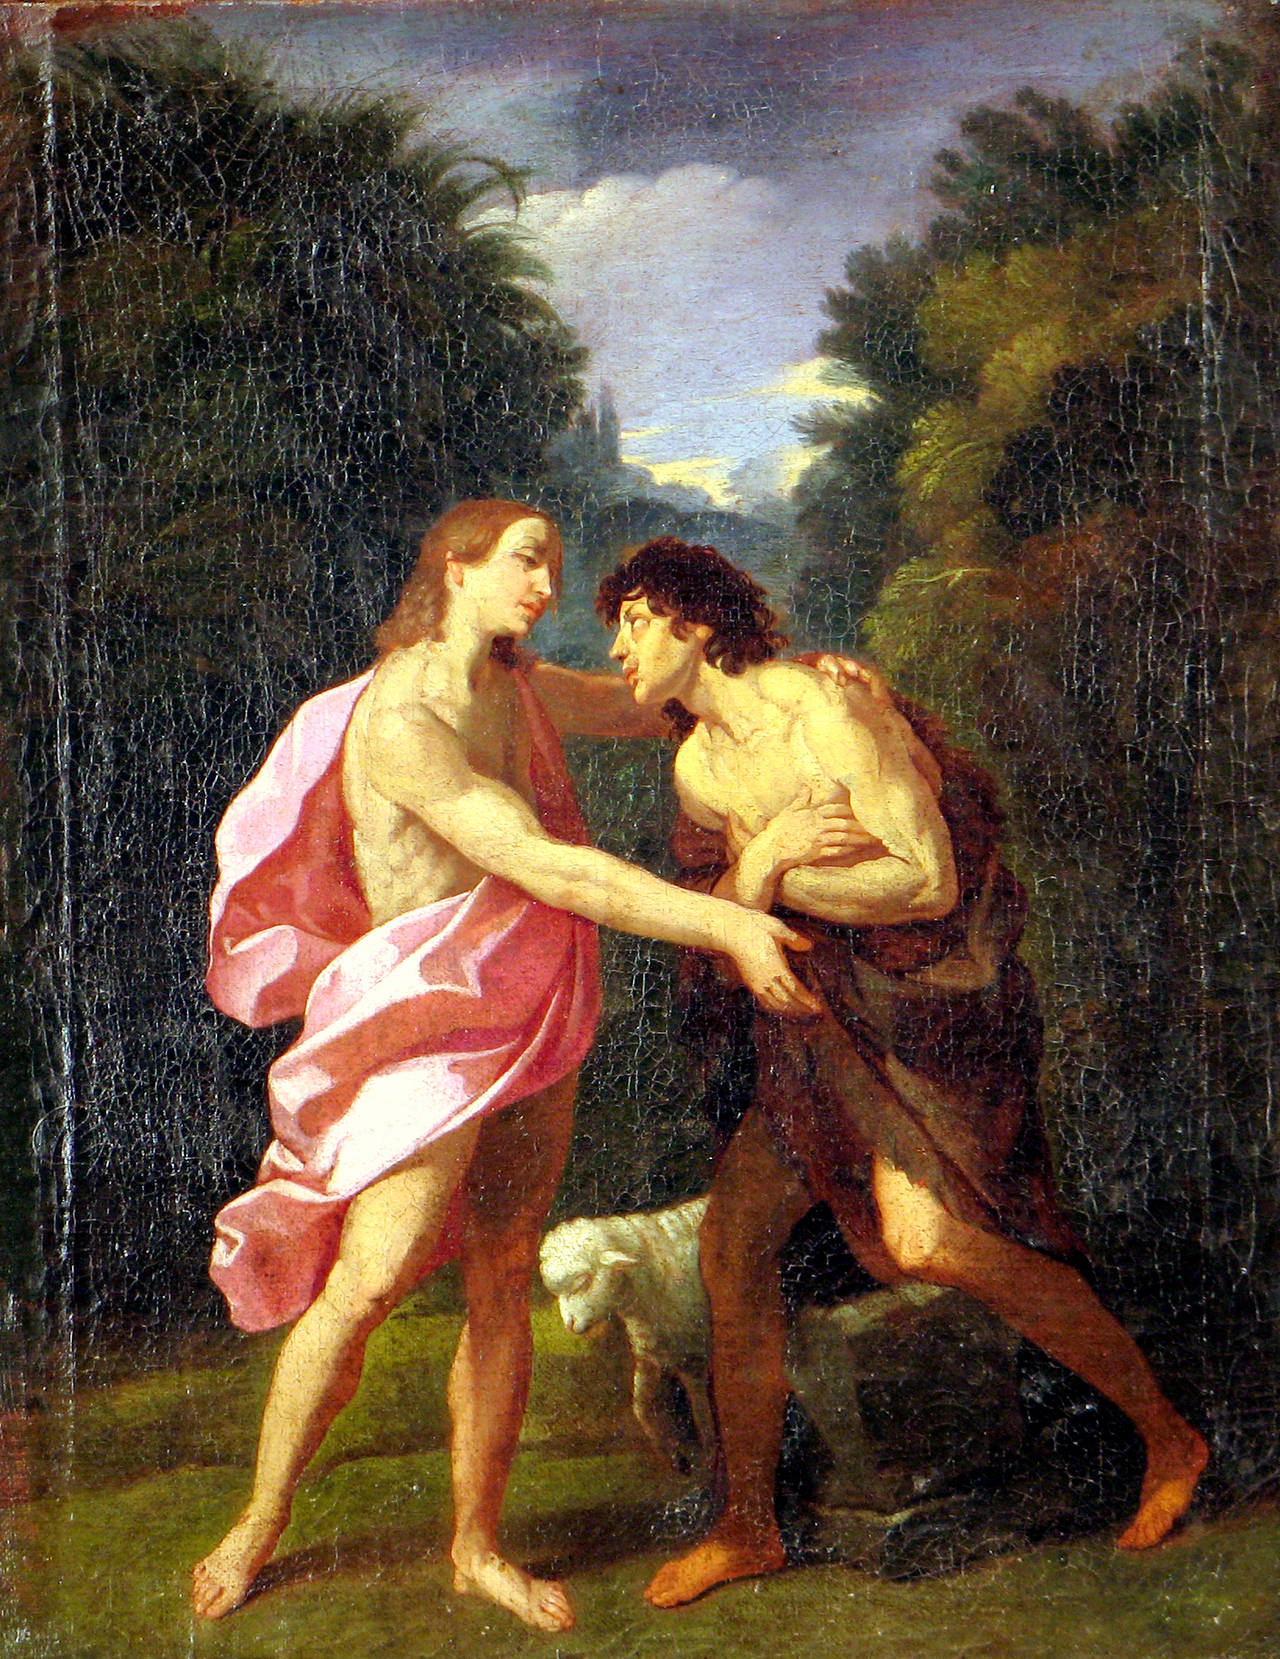 Jesus and Saint John the Baptist - Painting by Unknown